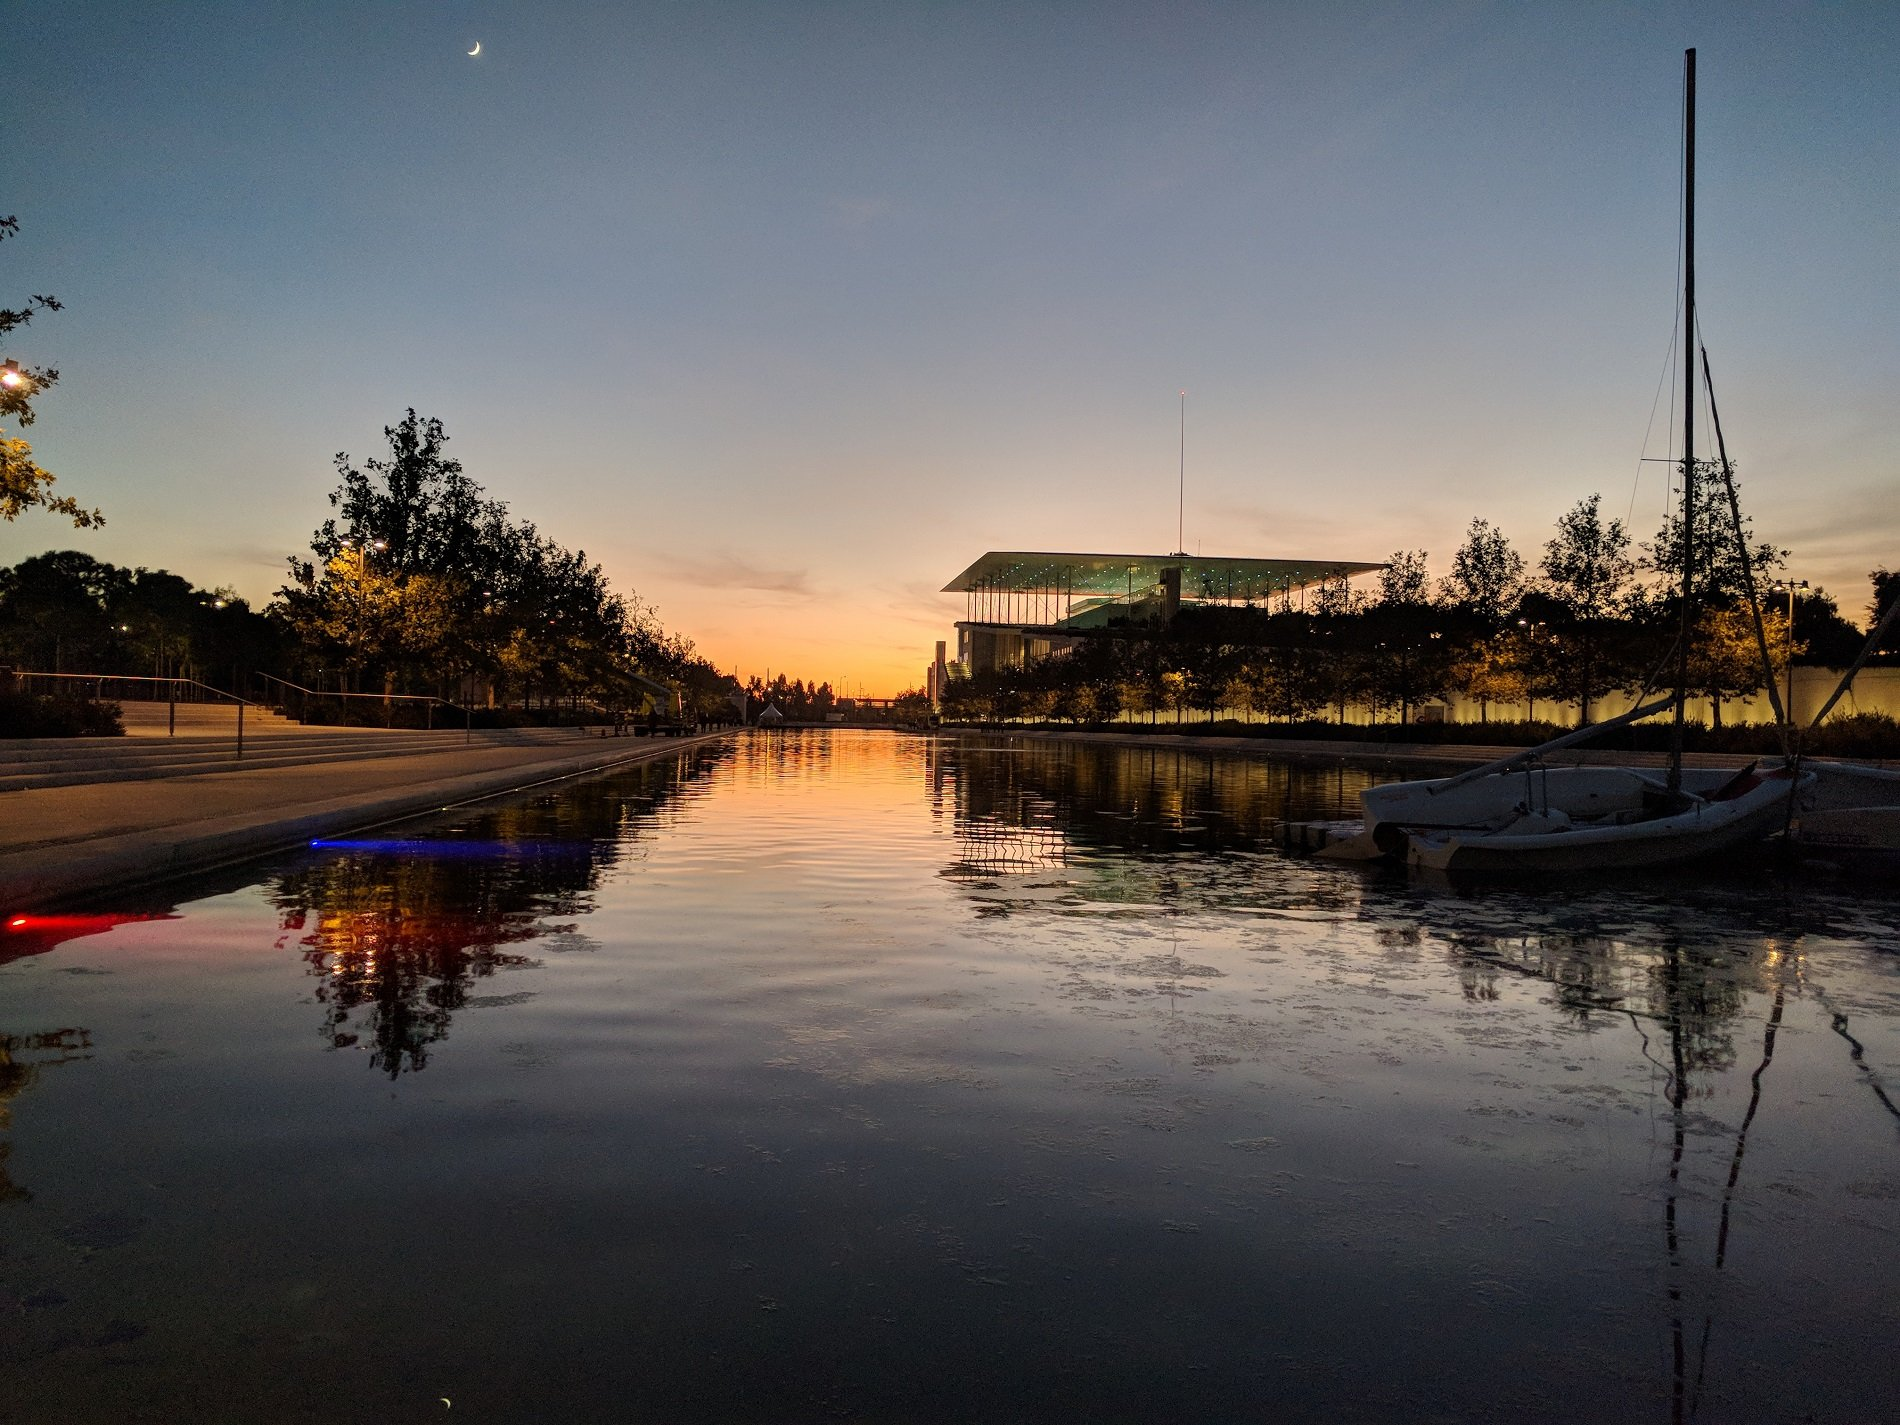 Walk along SNFCC's esplanade and enjoy the beautiful Athenian sunset. Source: Truevoyagers